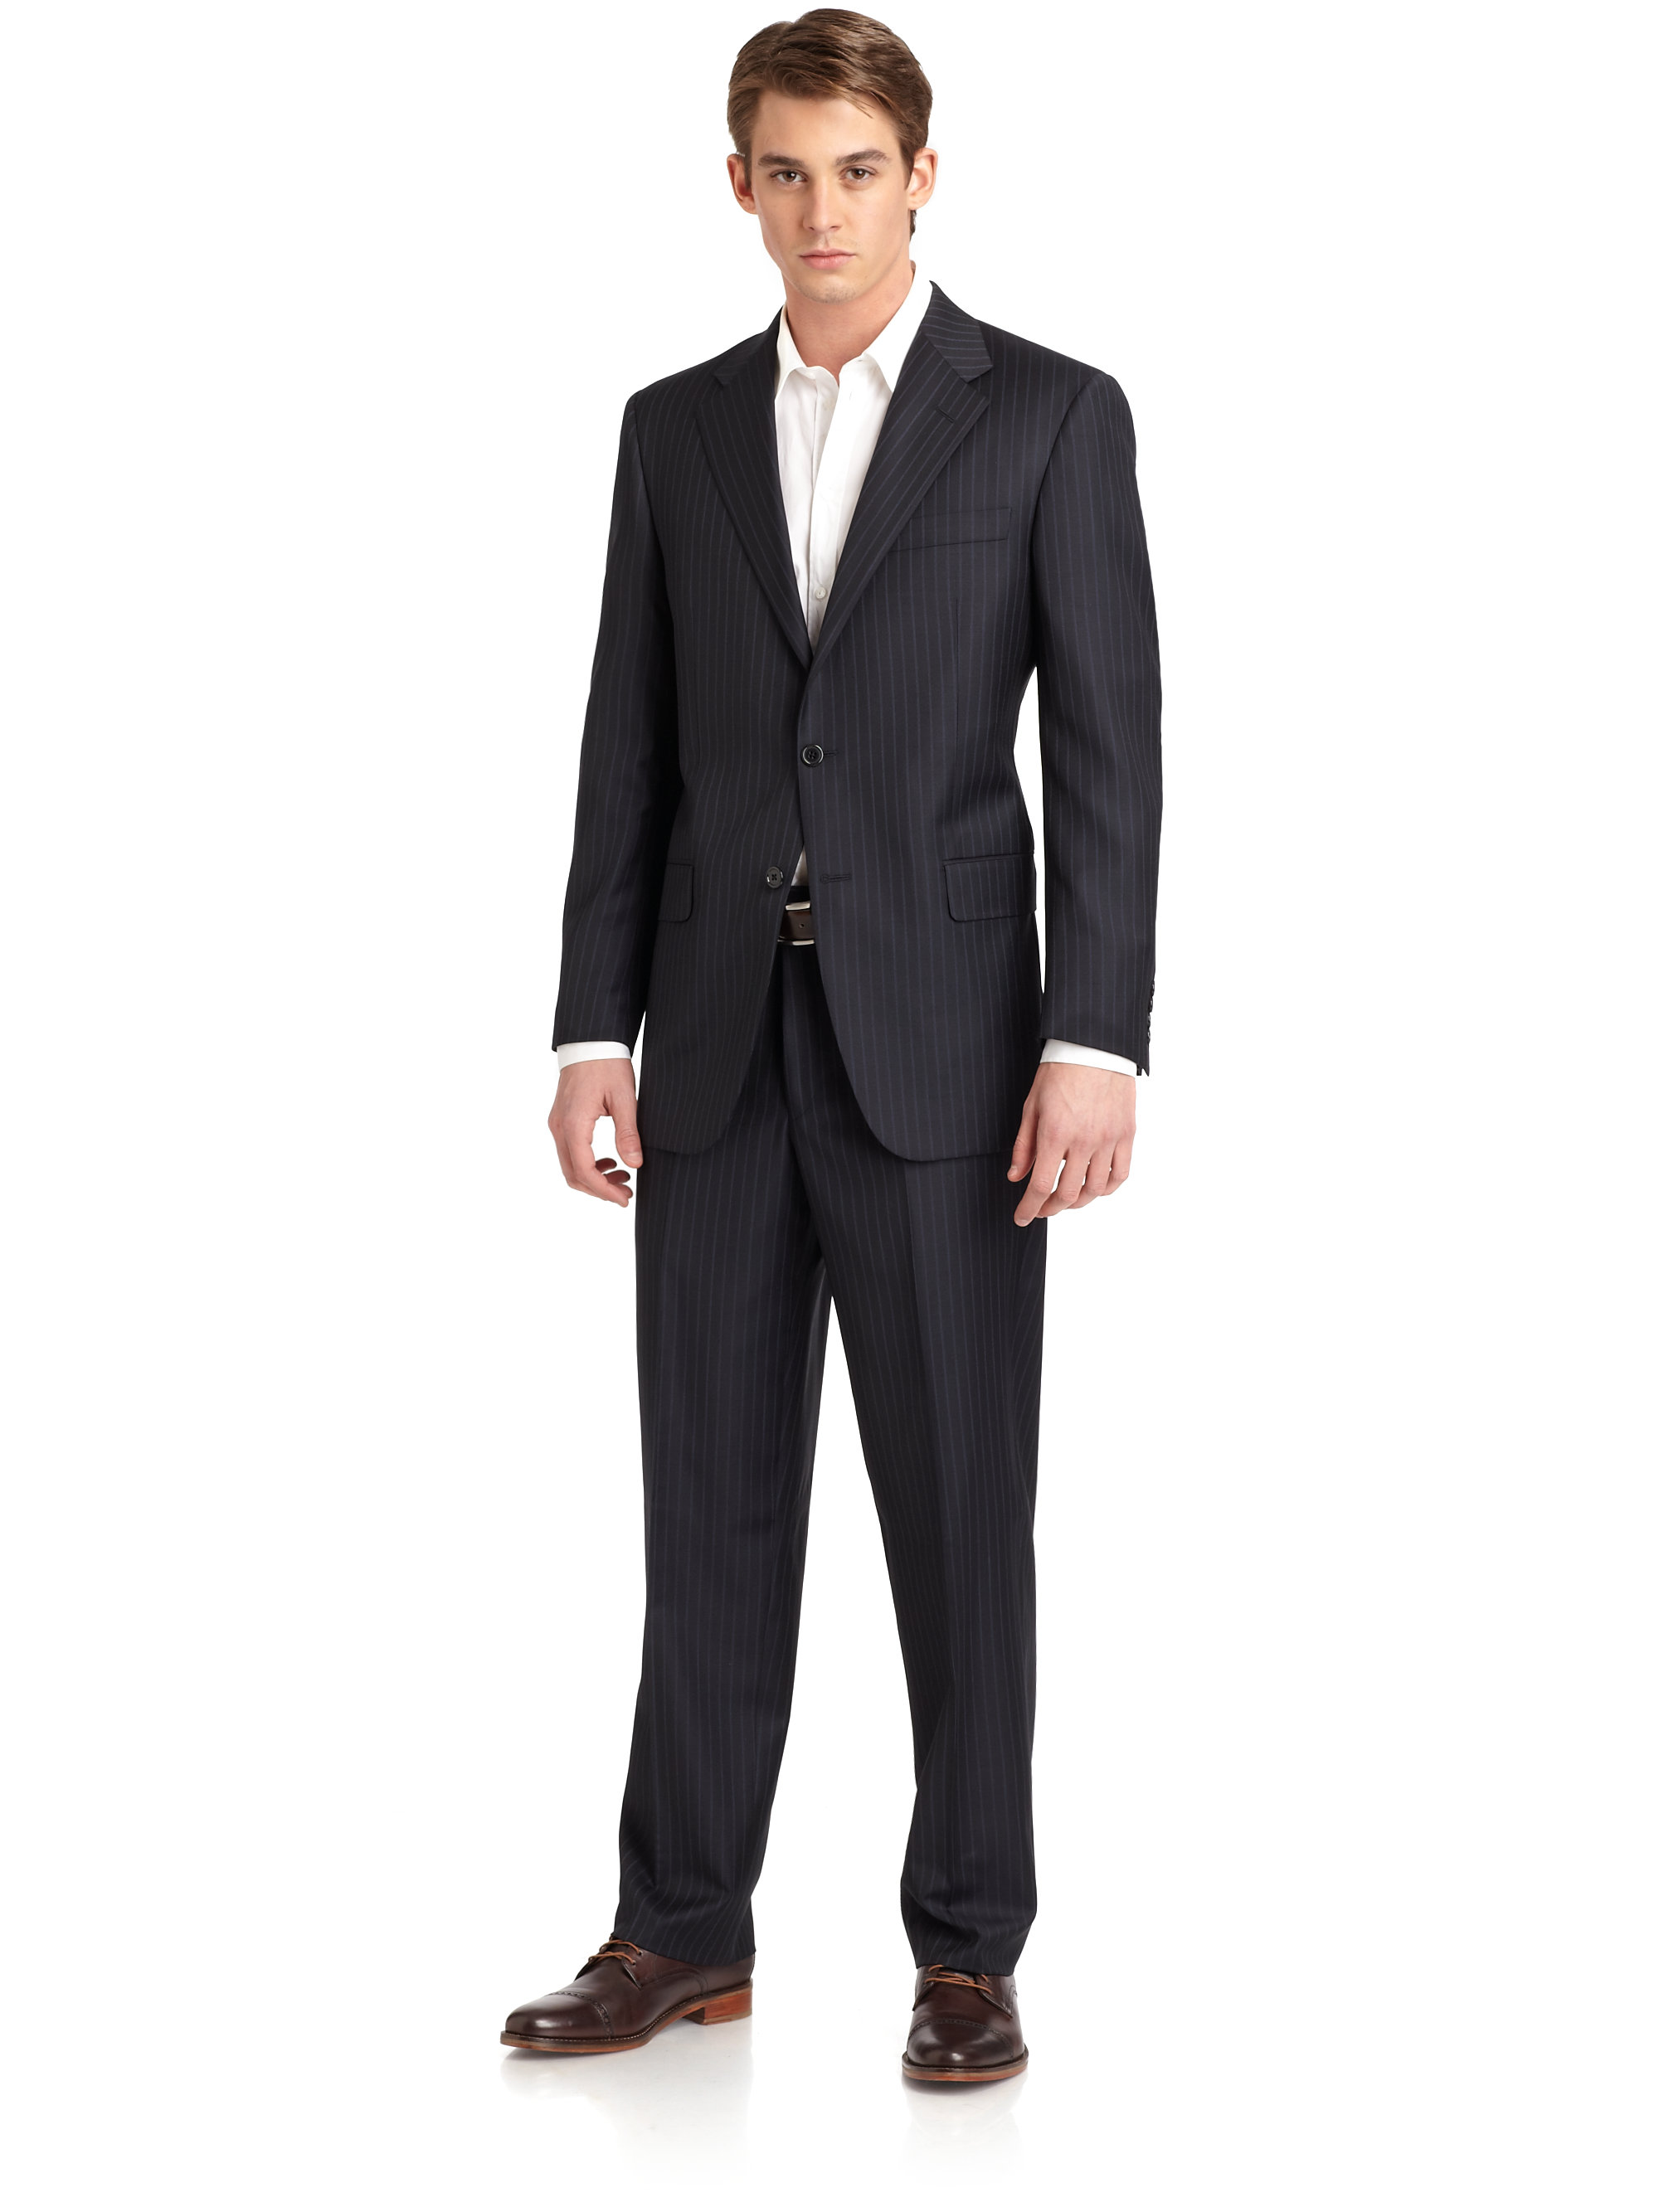 Hickey Freeman Lindsey L Series Wool Striped Suit In Black